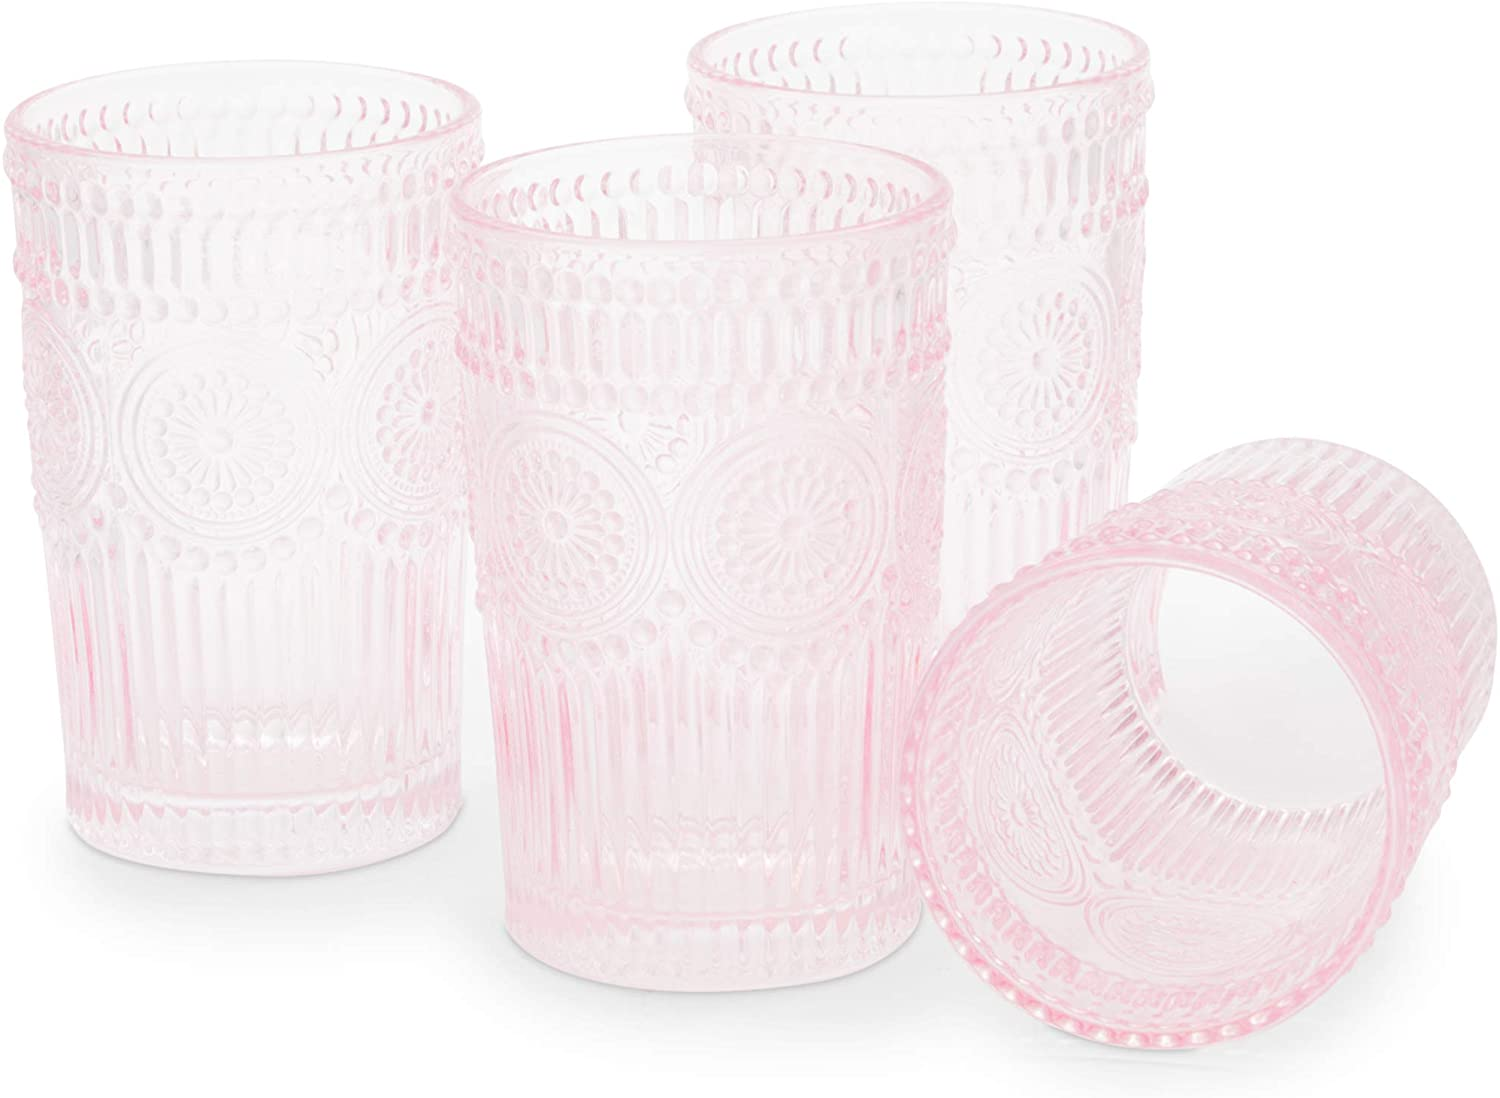 Pink Vintage Style Drinking Glasses